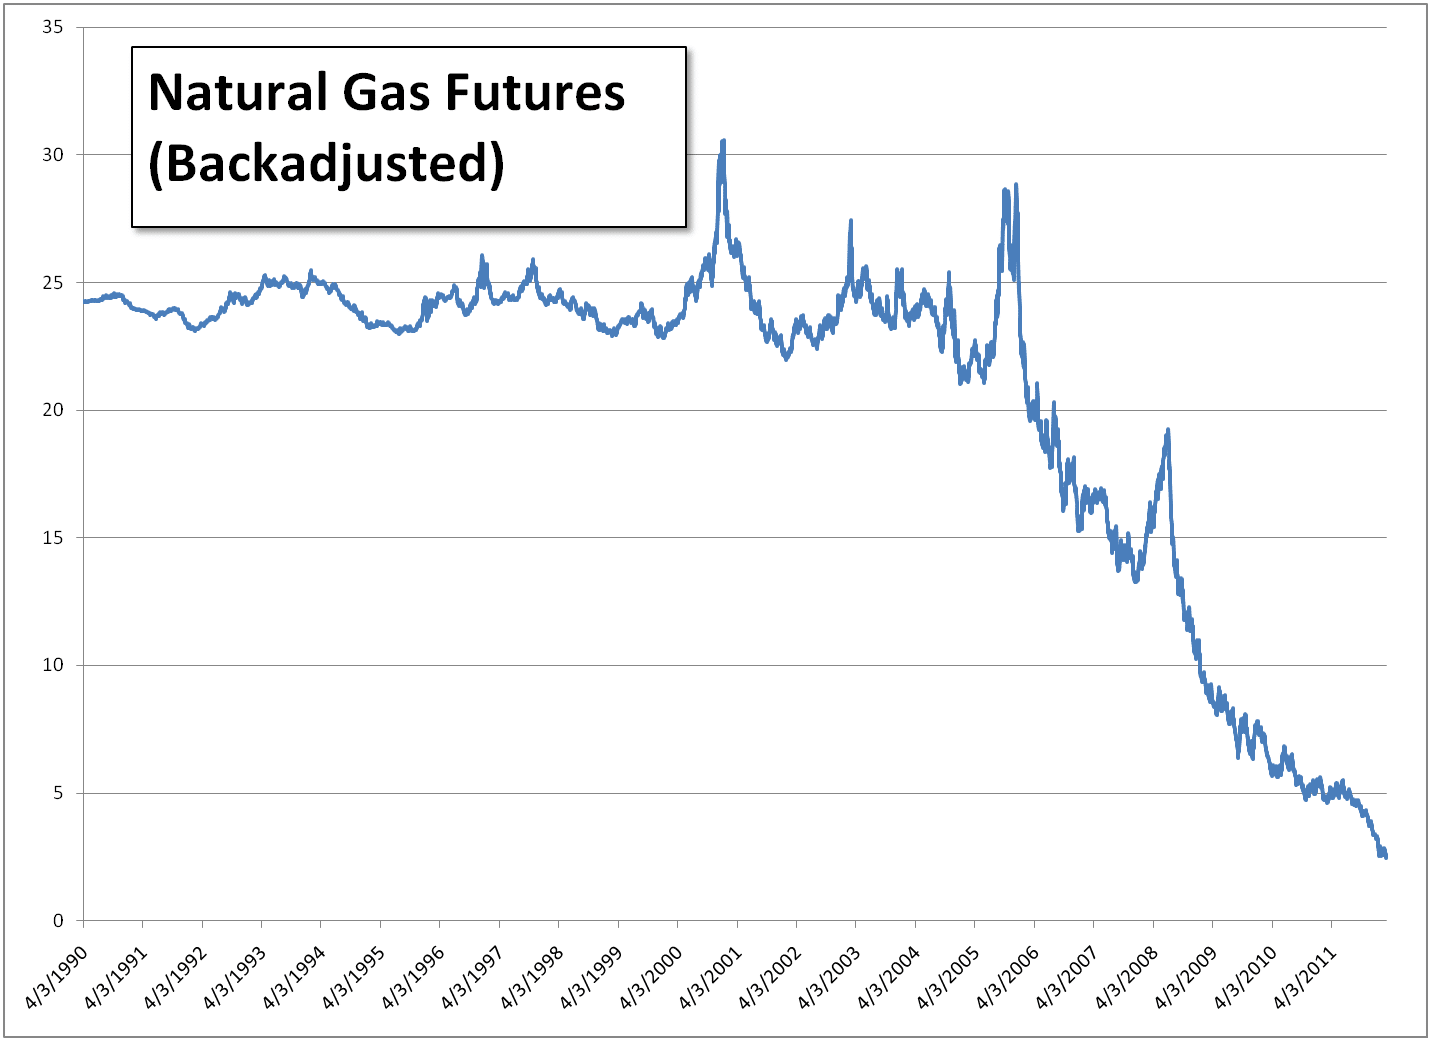 Graph of Natural Gas Futures from 1990